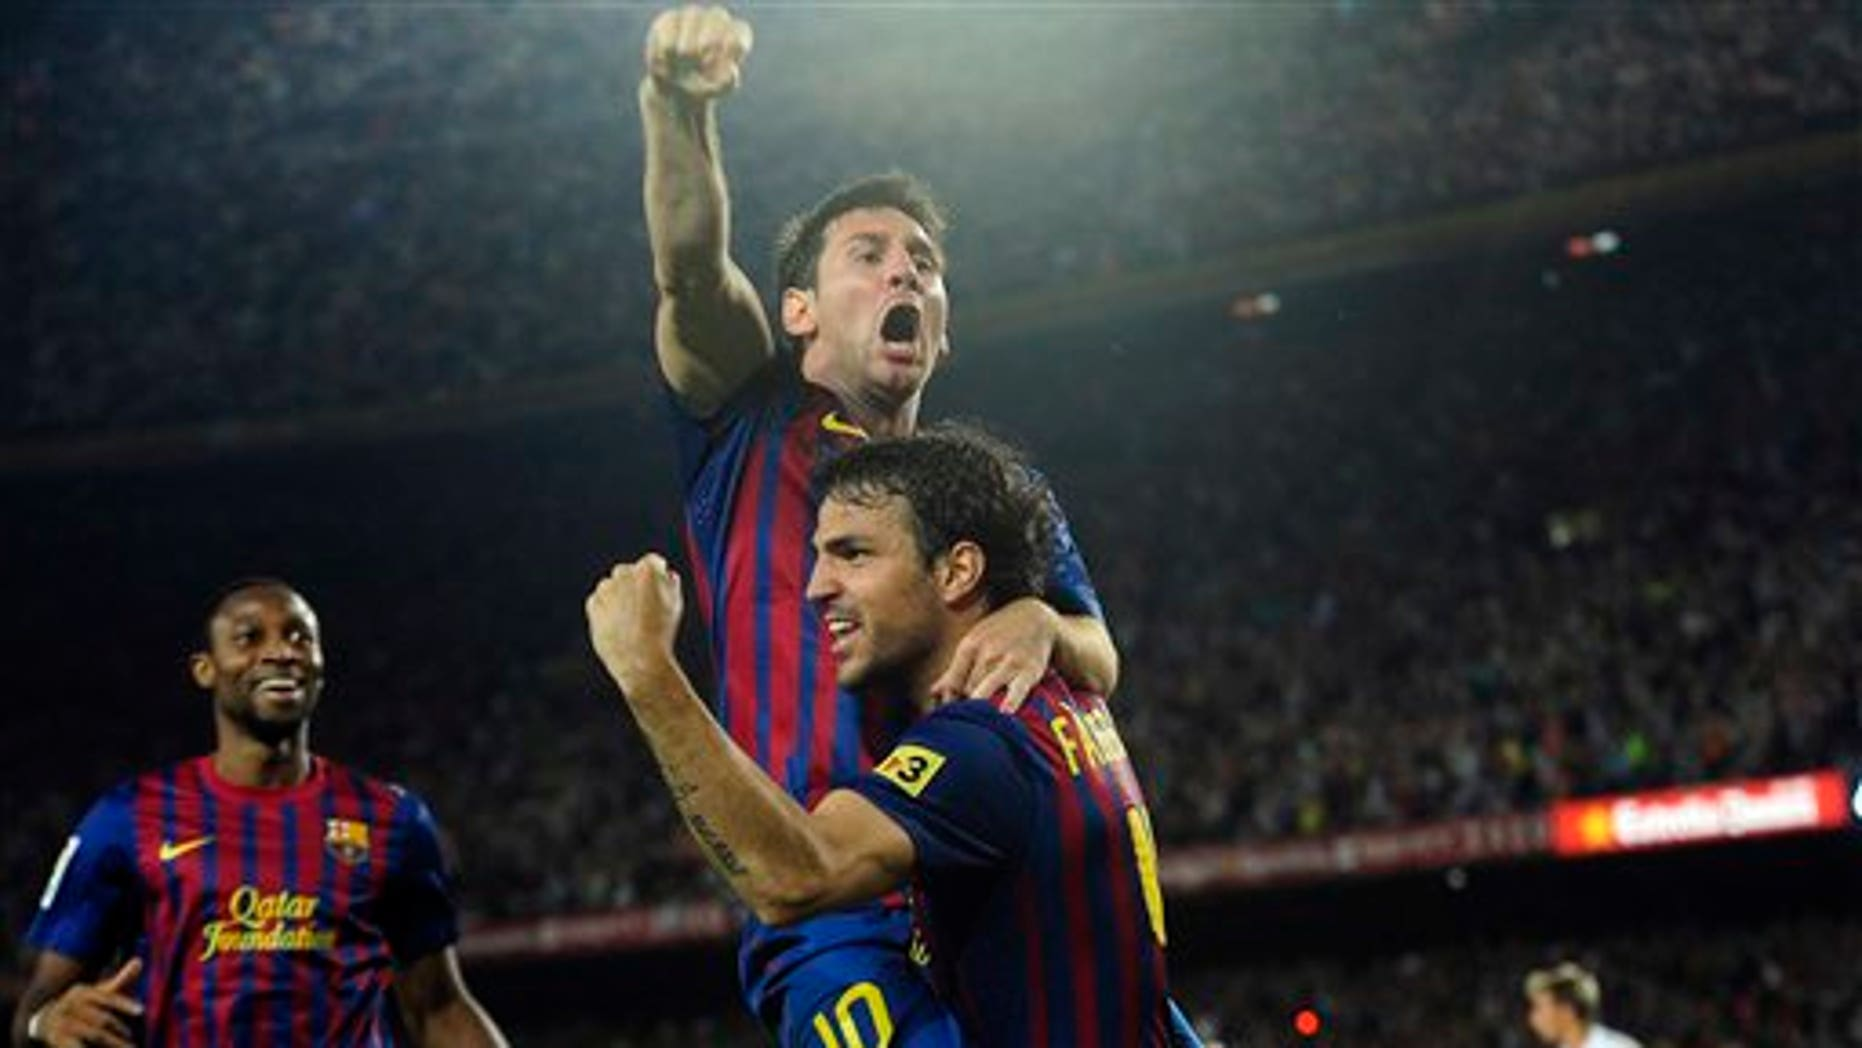 FC Barcelona's Lionel Messi from Argentina, second right reacts after scoring with his teammate Cesc Fabregas against Real Madrid during his Super Cup final second leg soccer match at the Camp Nou Stadium in Barcelona, Spain, Wednesday, Aug. 17, 2011. (AP Photo/Manu Fernandez)